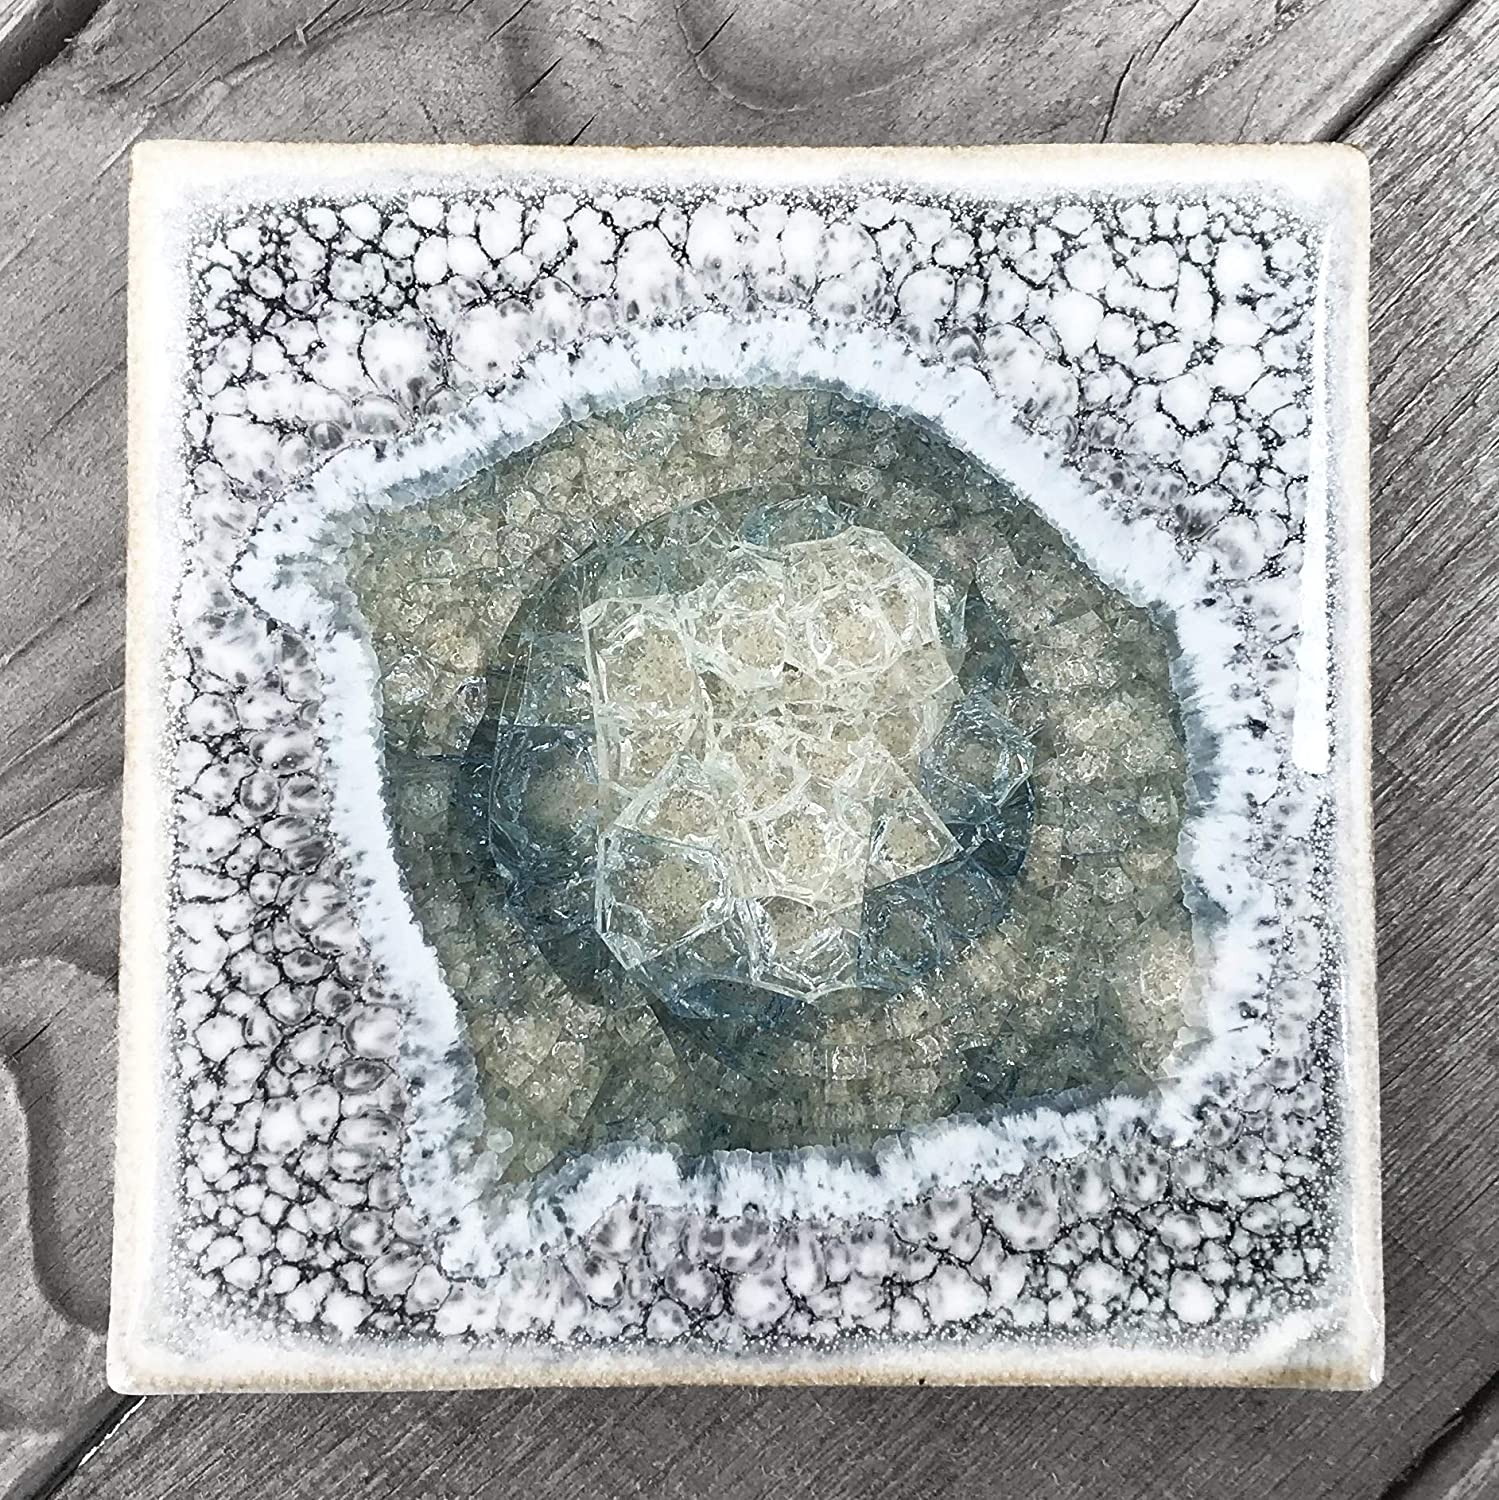 Kerry Brooks Pottery Individual Coaster Dock 6 Pottery Agate Coaster Geode Coaster Dock 6 Pottery Coaster Fused Glass Coaster Crackle Glass Coaster Geode Crackle Coaster in Brick